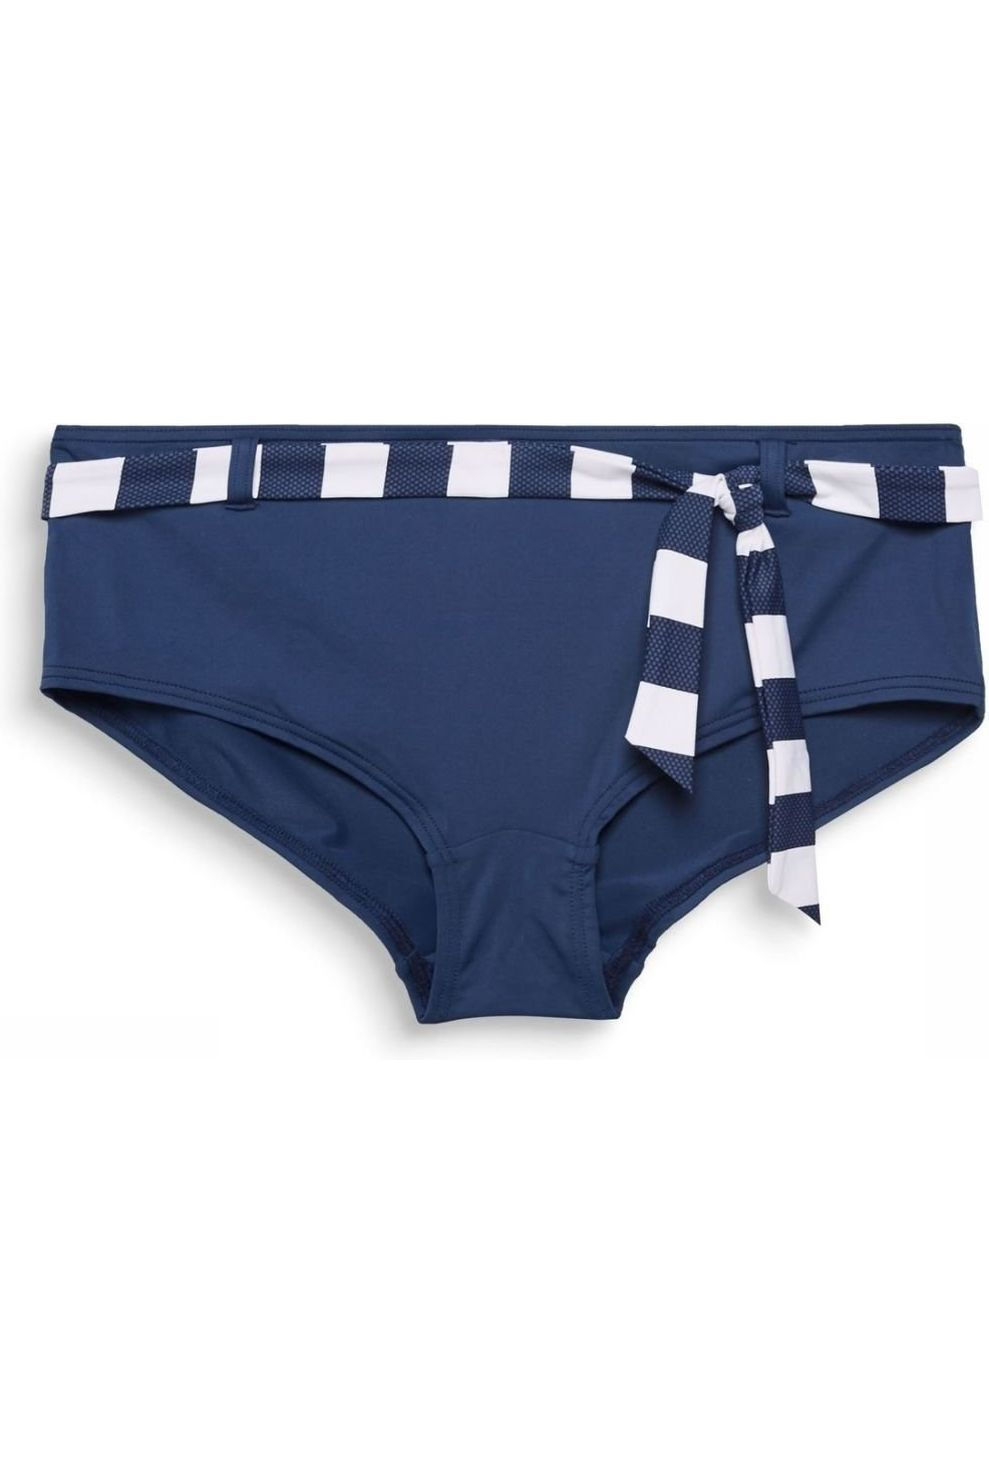 Esprit Slip North Brief Hipster With Acc Belt voor dames - Blauw/Wit - Maten: 40, 42